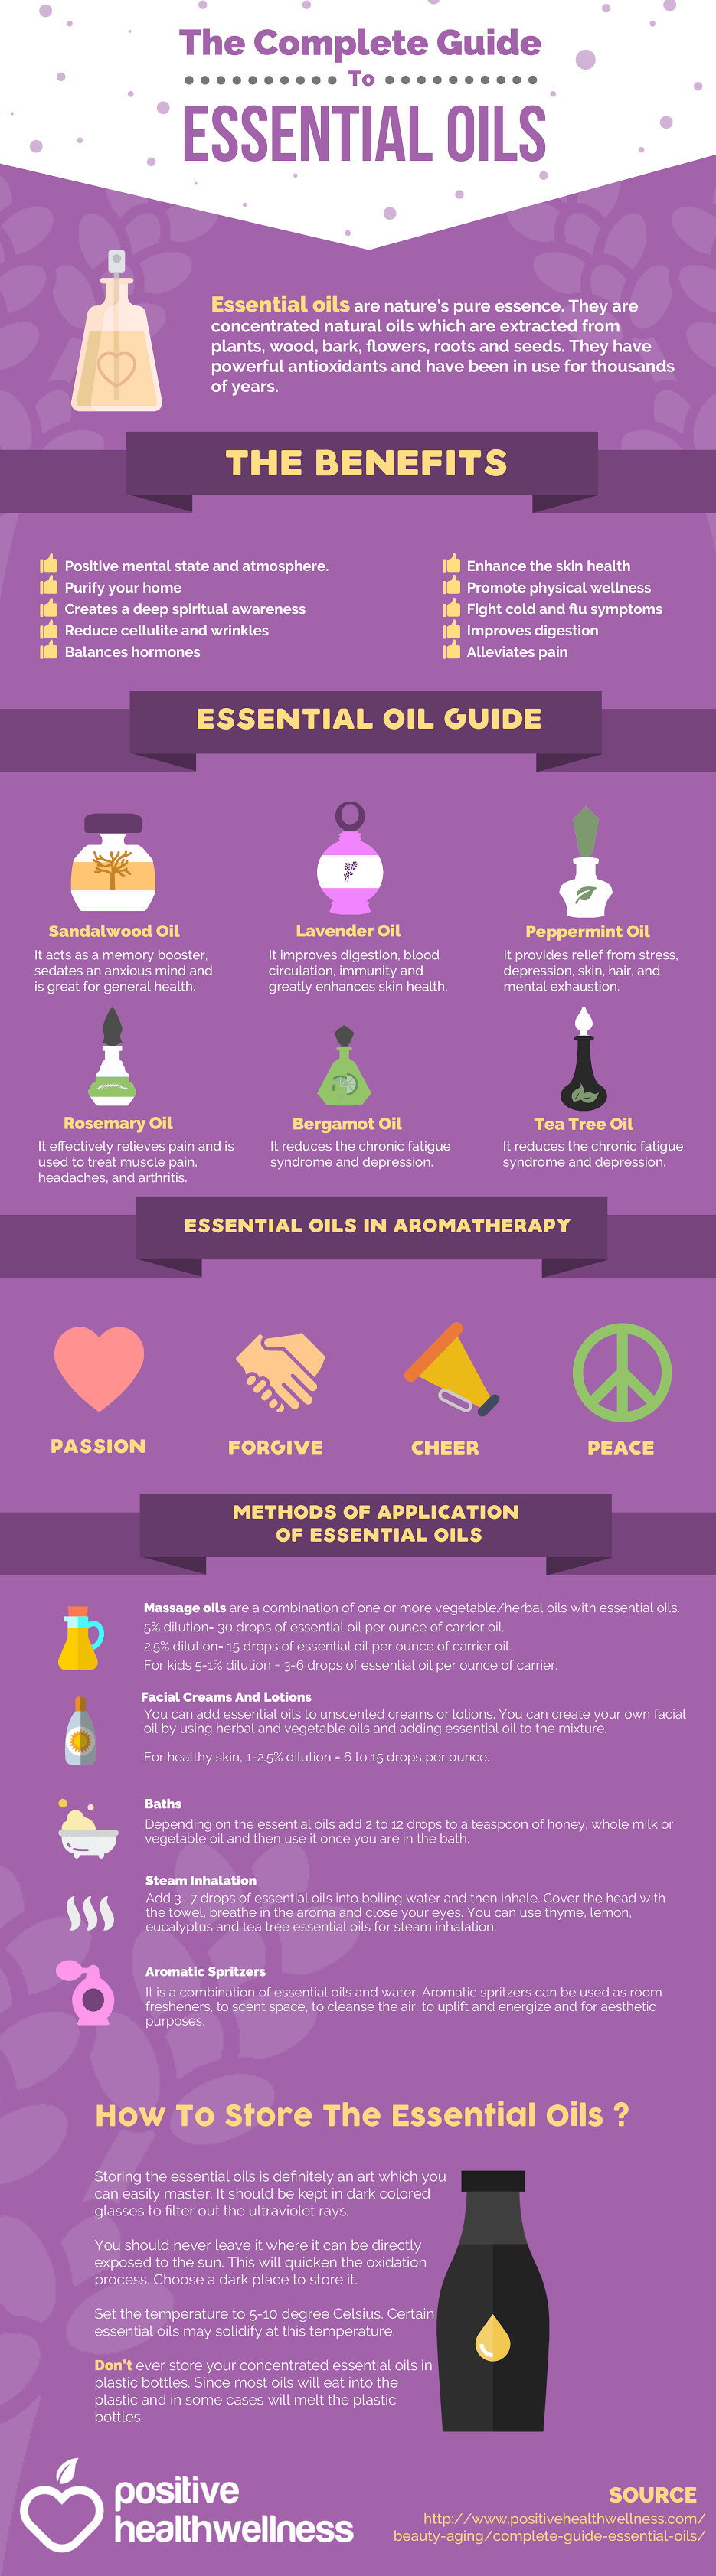 The Complete Guide to Essential Oils